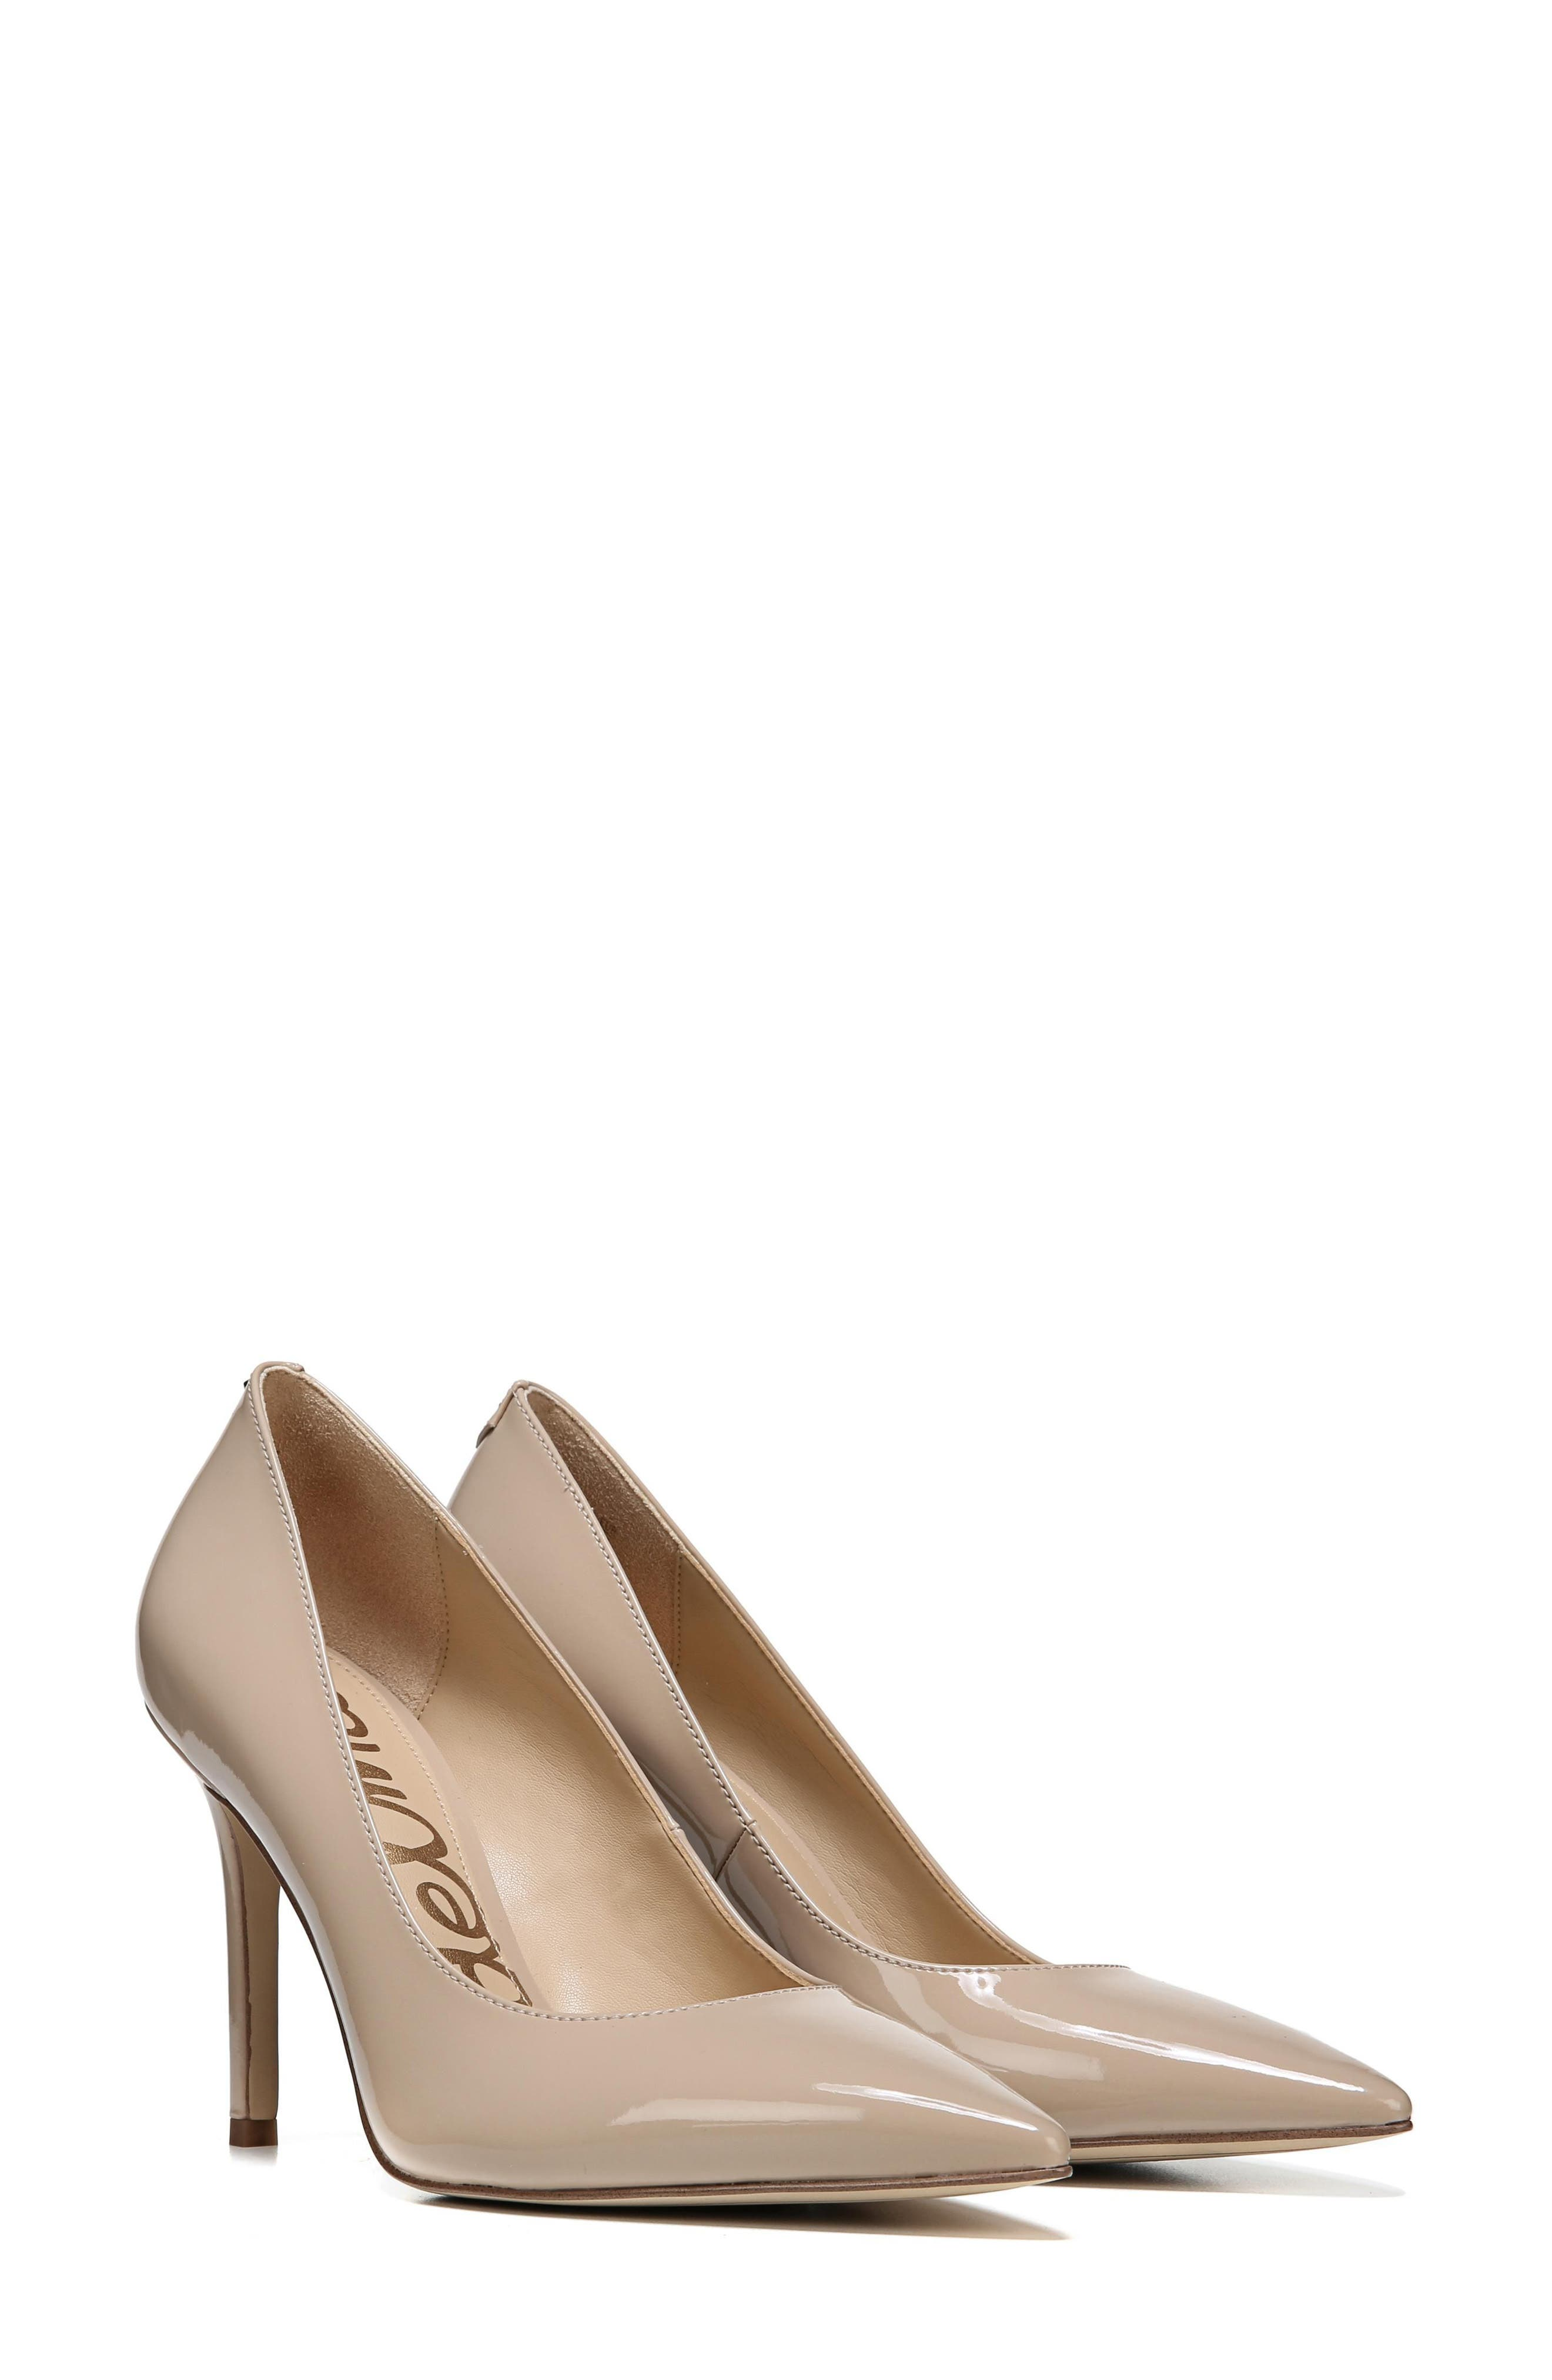 SAM EDELMAN, Hazel Pointy Toe Pump, Alternate thumbnail 10, color, NUDE LINEN PATENT LEATHER